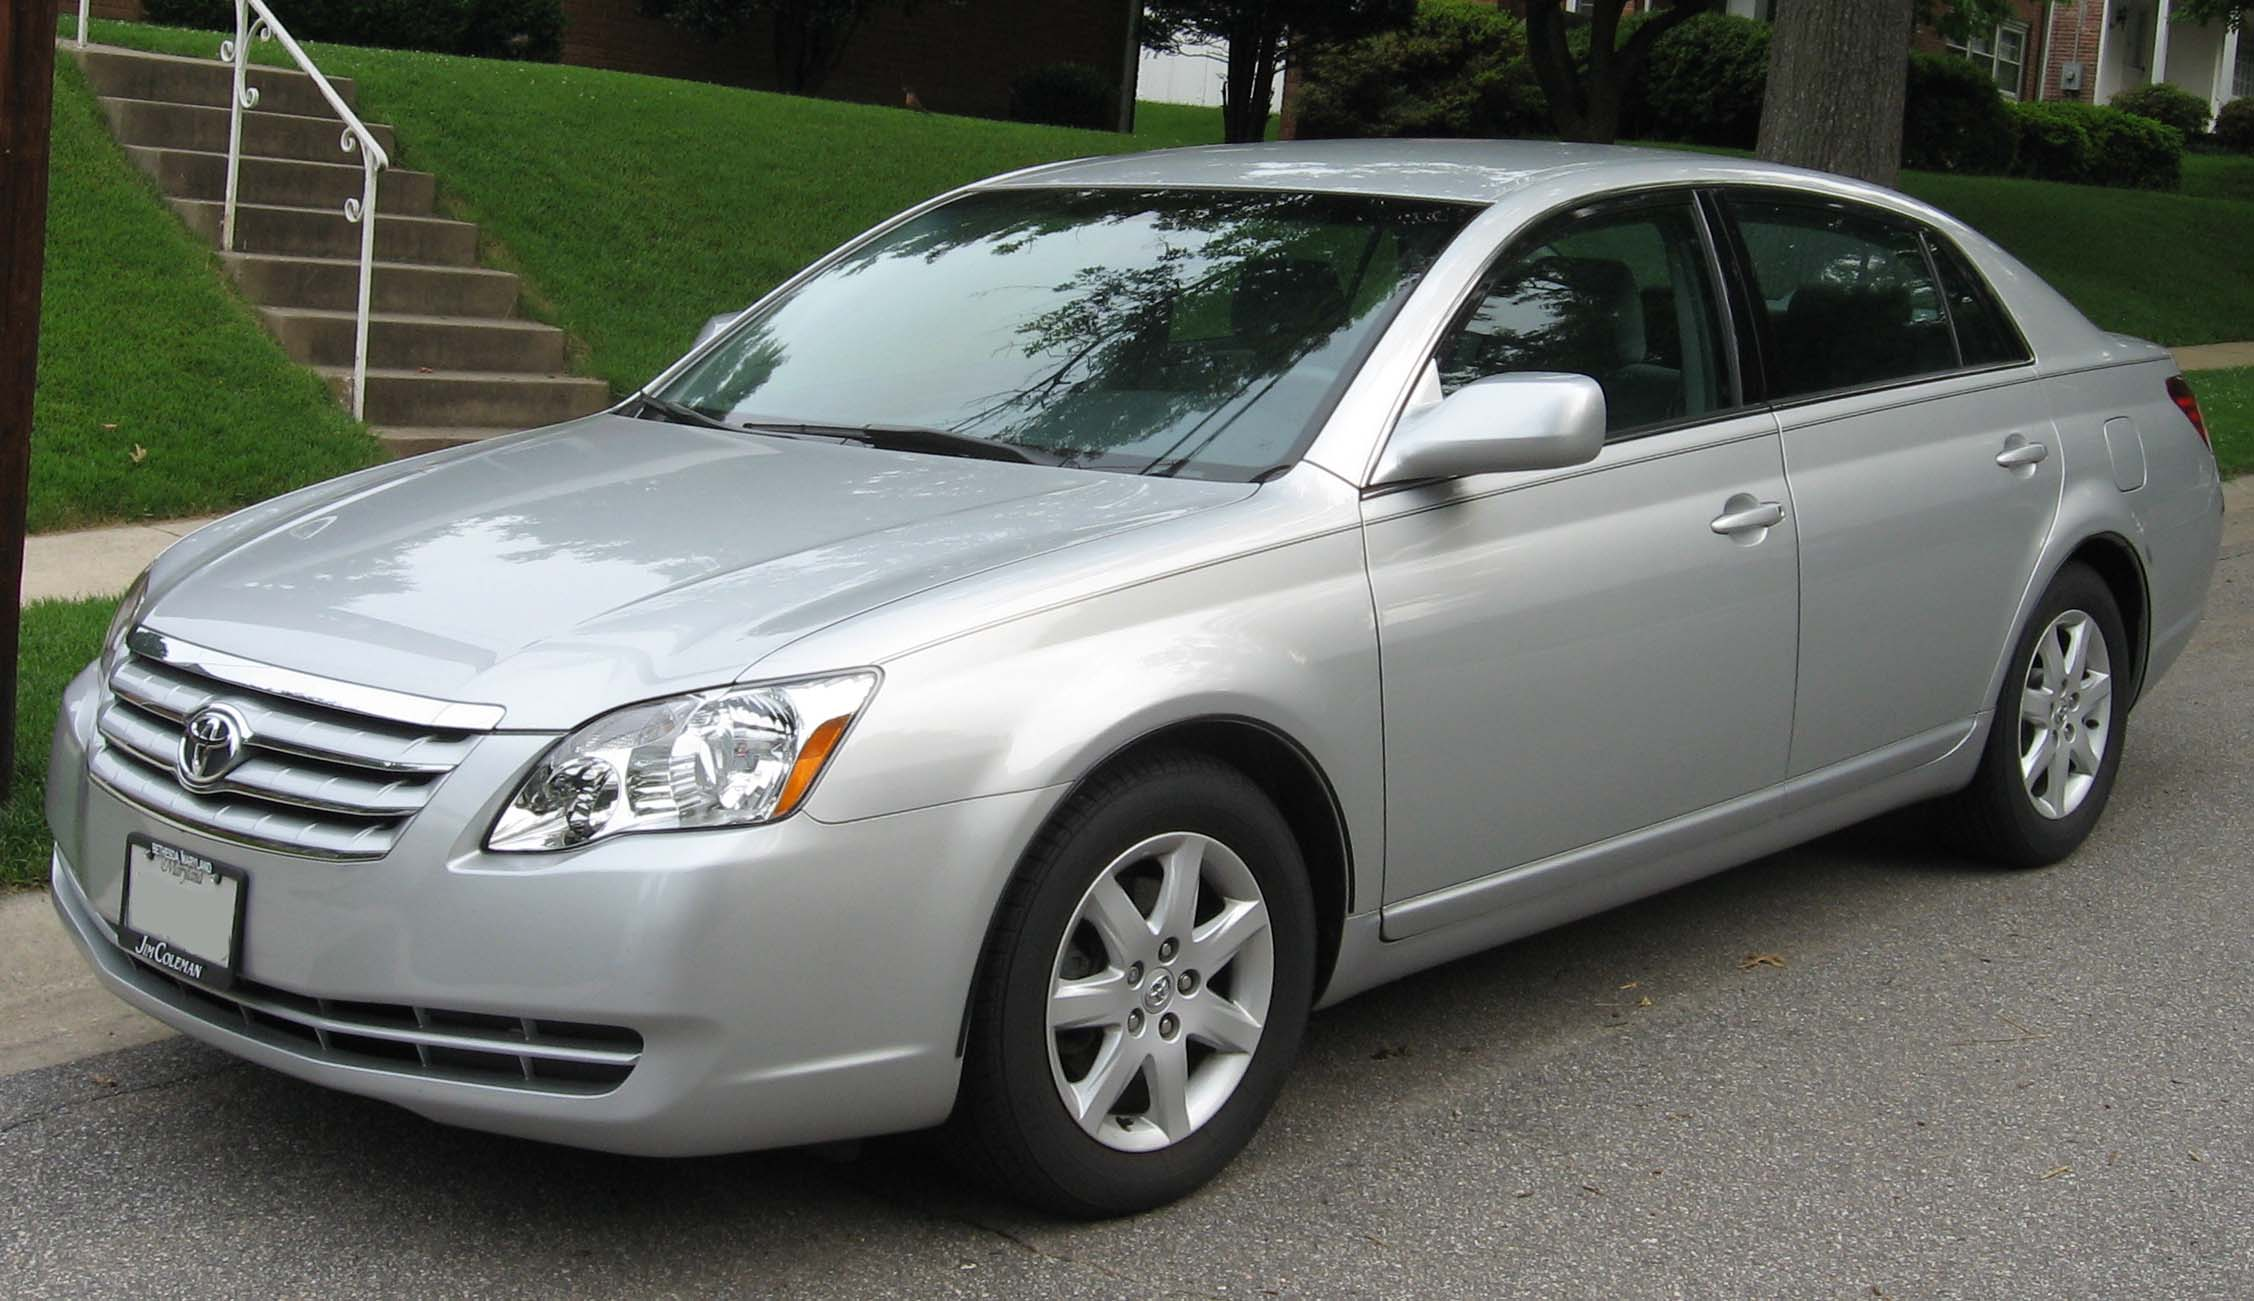 2008 toyota avalon information and photos zombiedrive. Black Bedroom Furniture Sets. Home Design Ideas